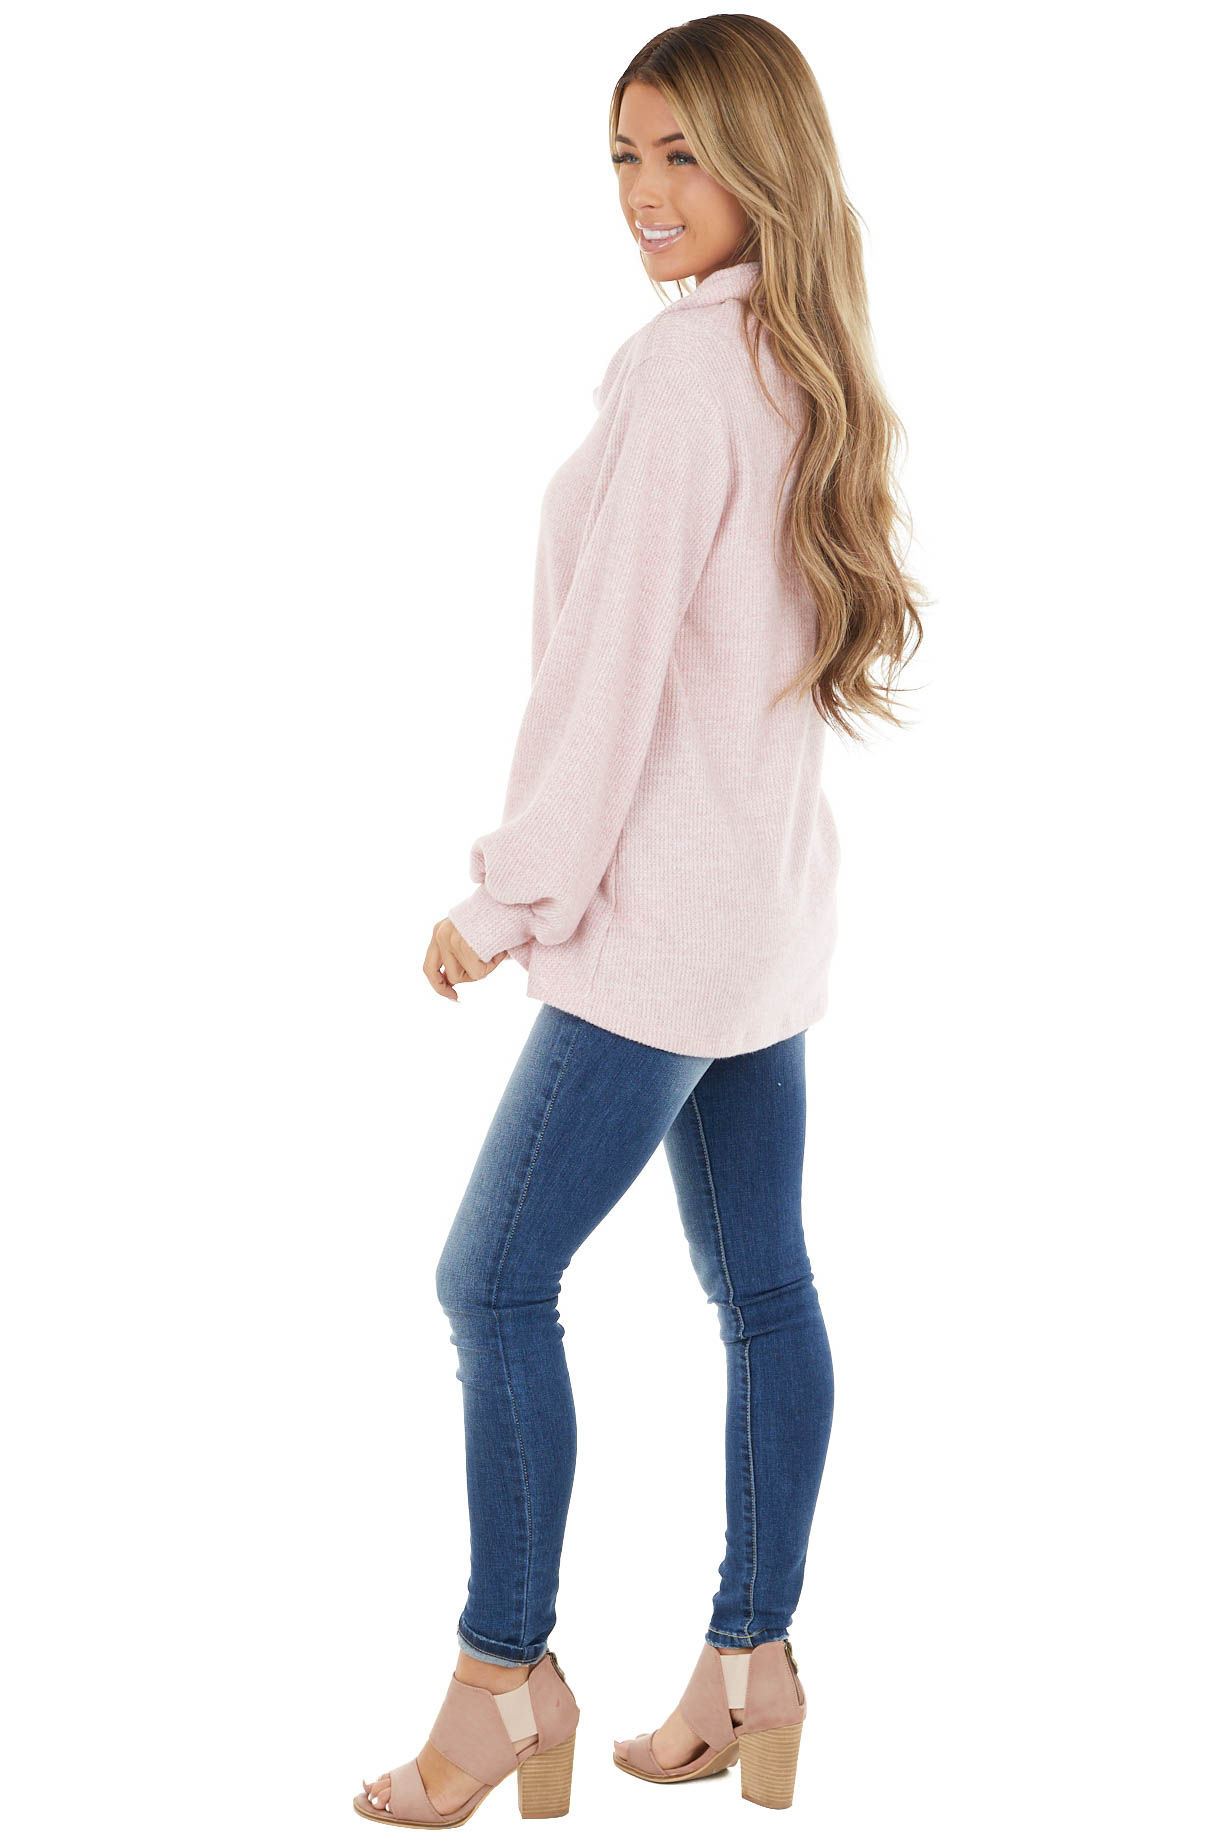 Heathered Blush Long Sleeve Thermal Knit Top with Cowl Neck